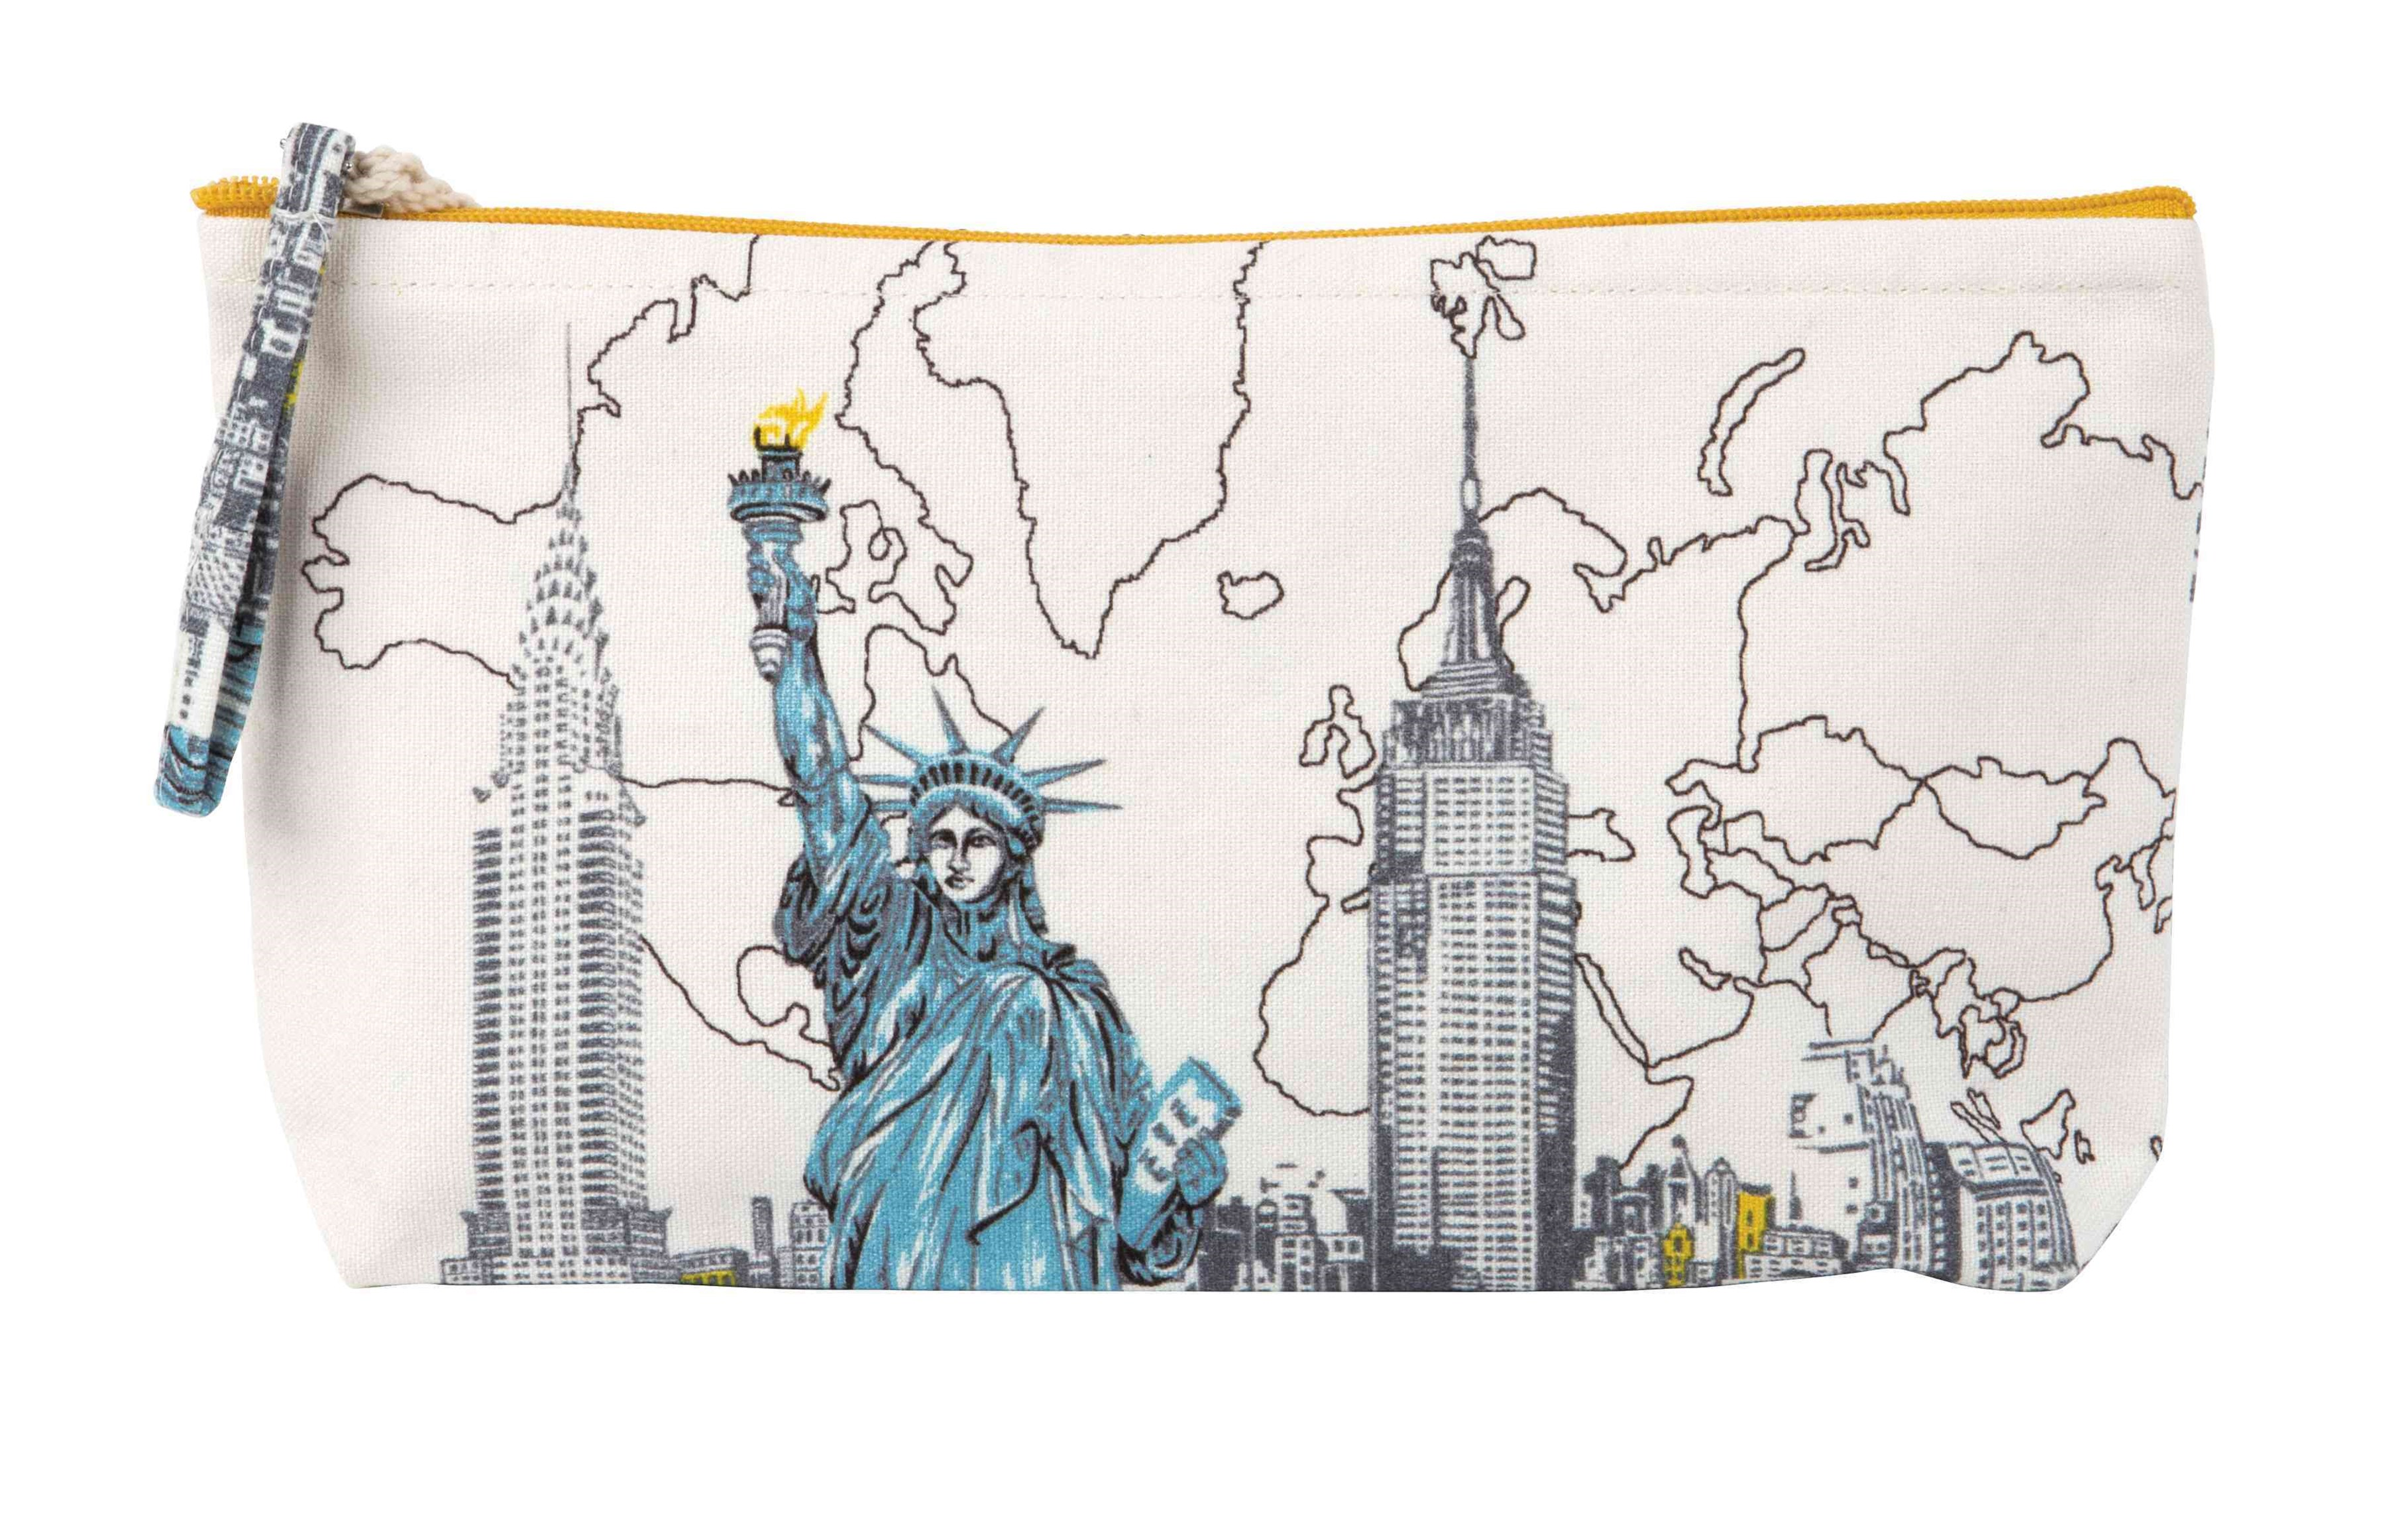 New York Liberty Handmade Pouch